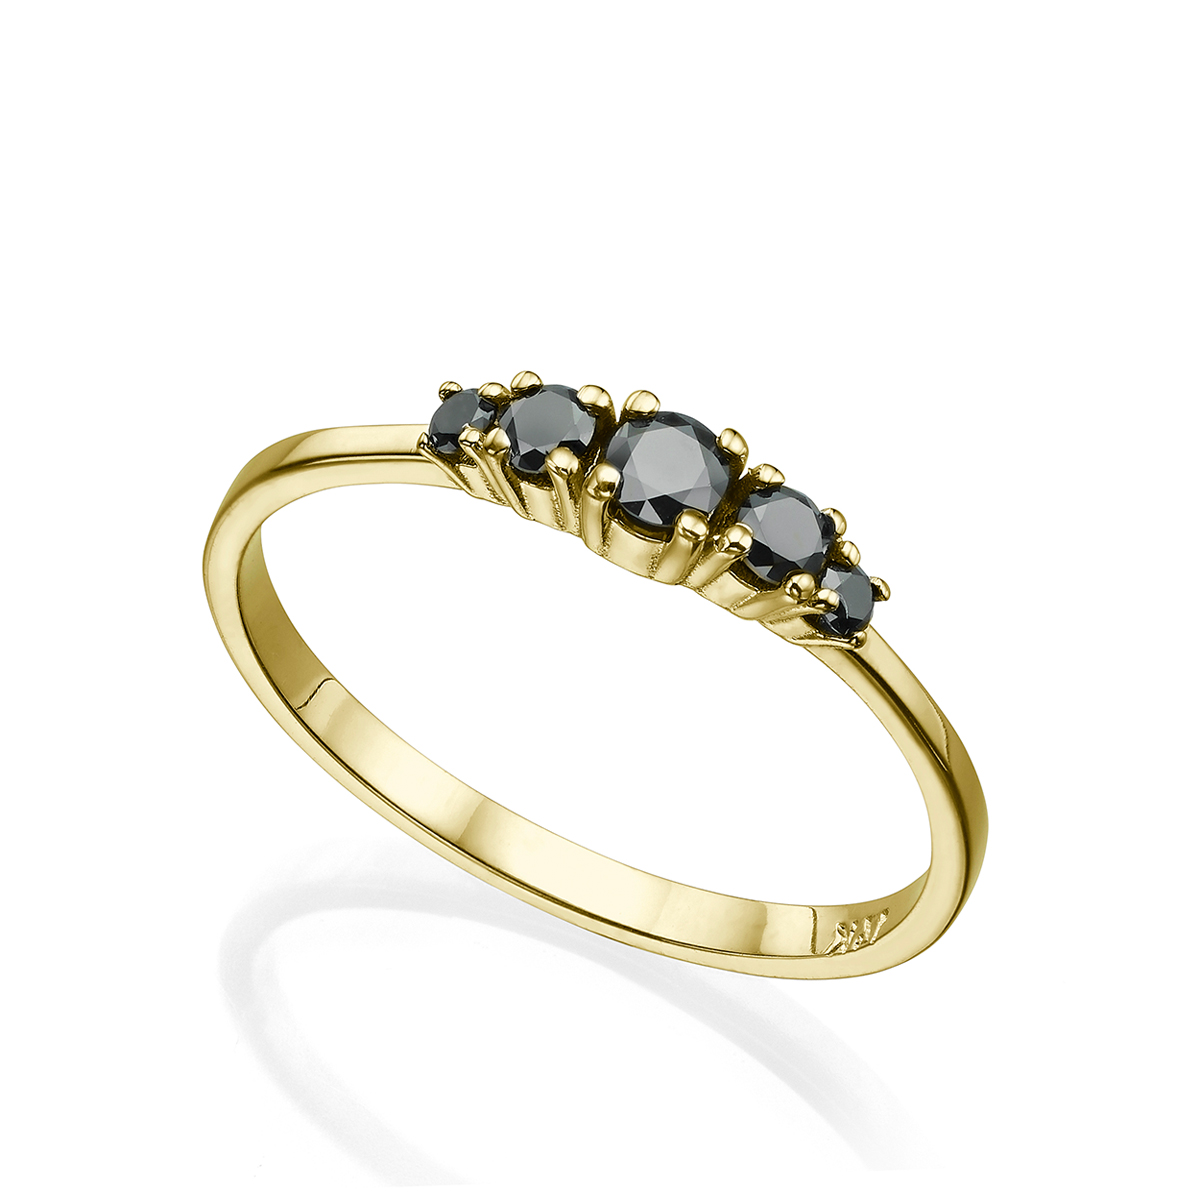 5 Black Diamonds Solid Gold Ring In a Prong Setting – 0.30ct